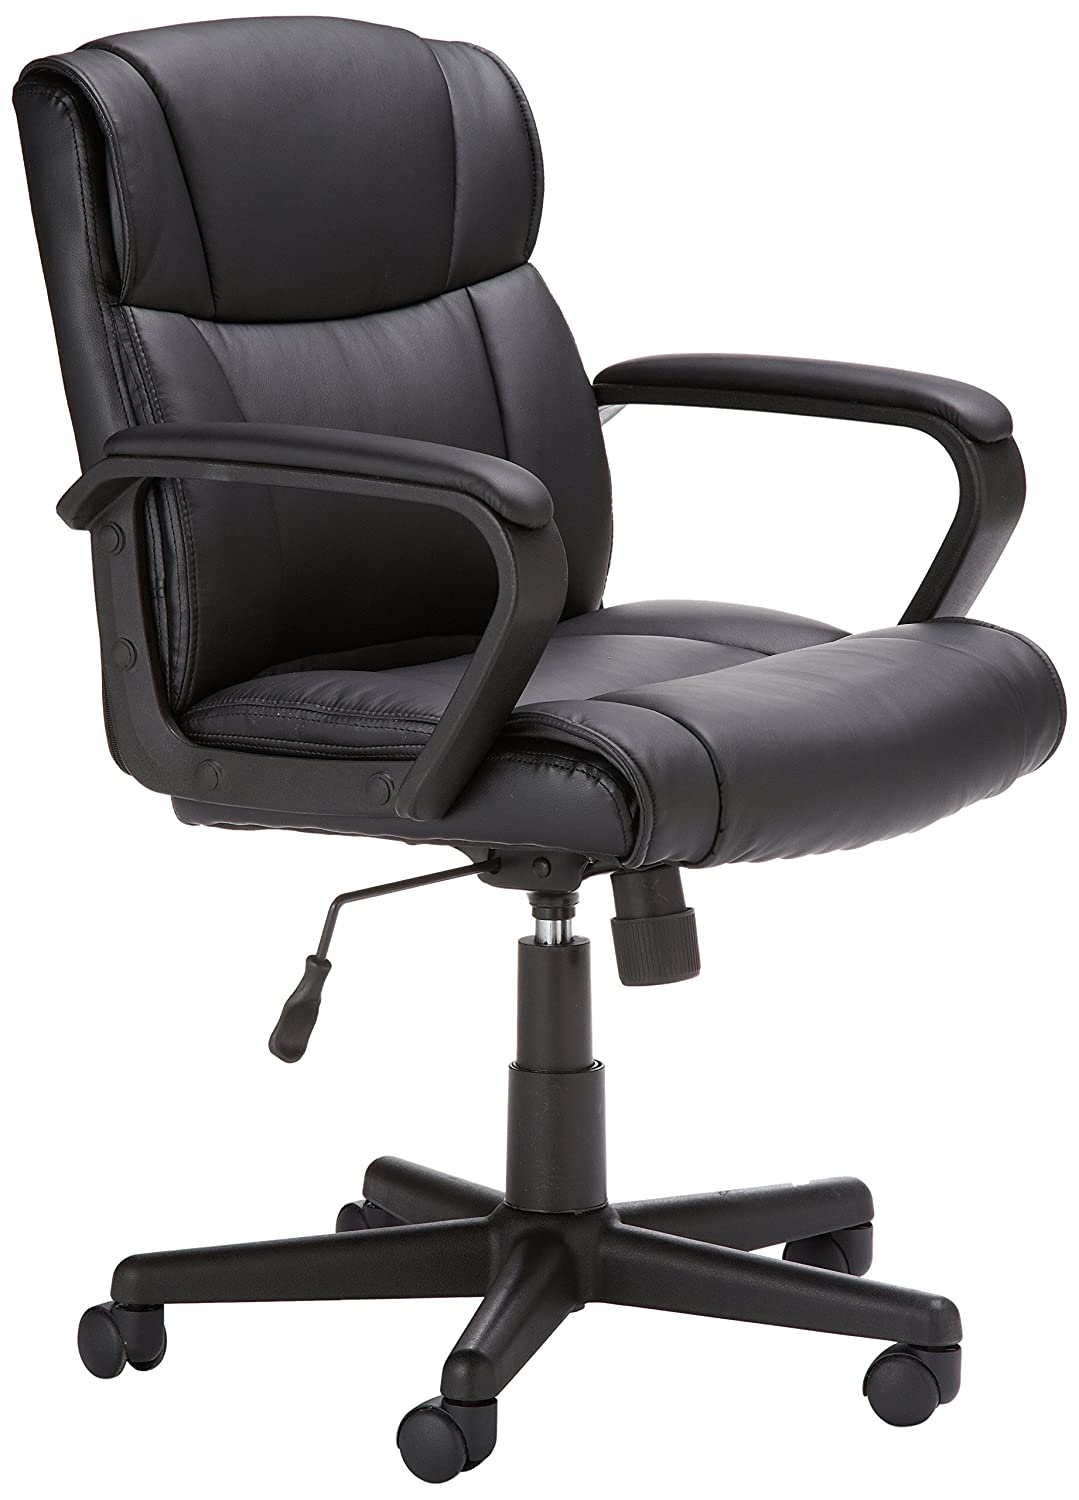 stool chair images robo accessories best office chairs for lower back pain detailed review